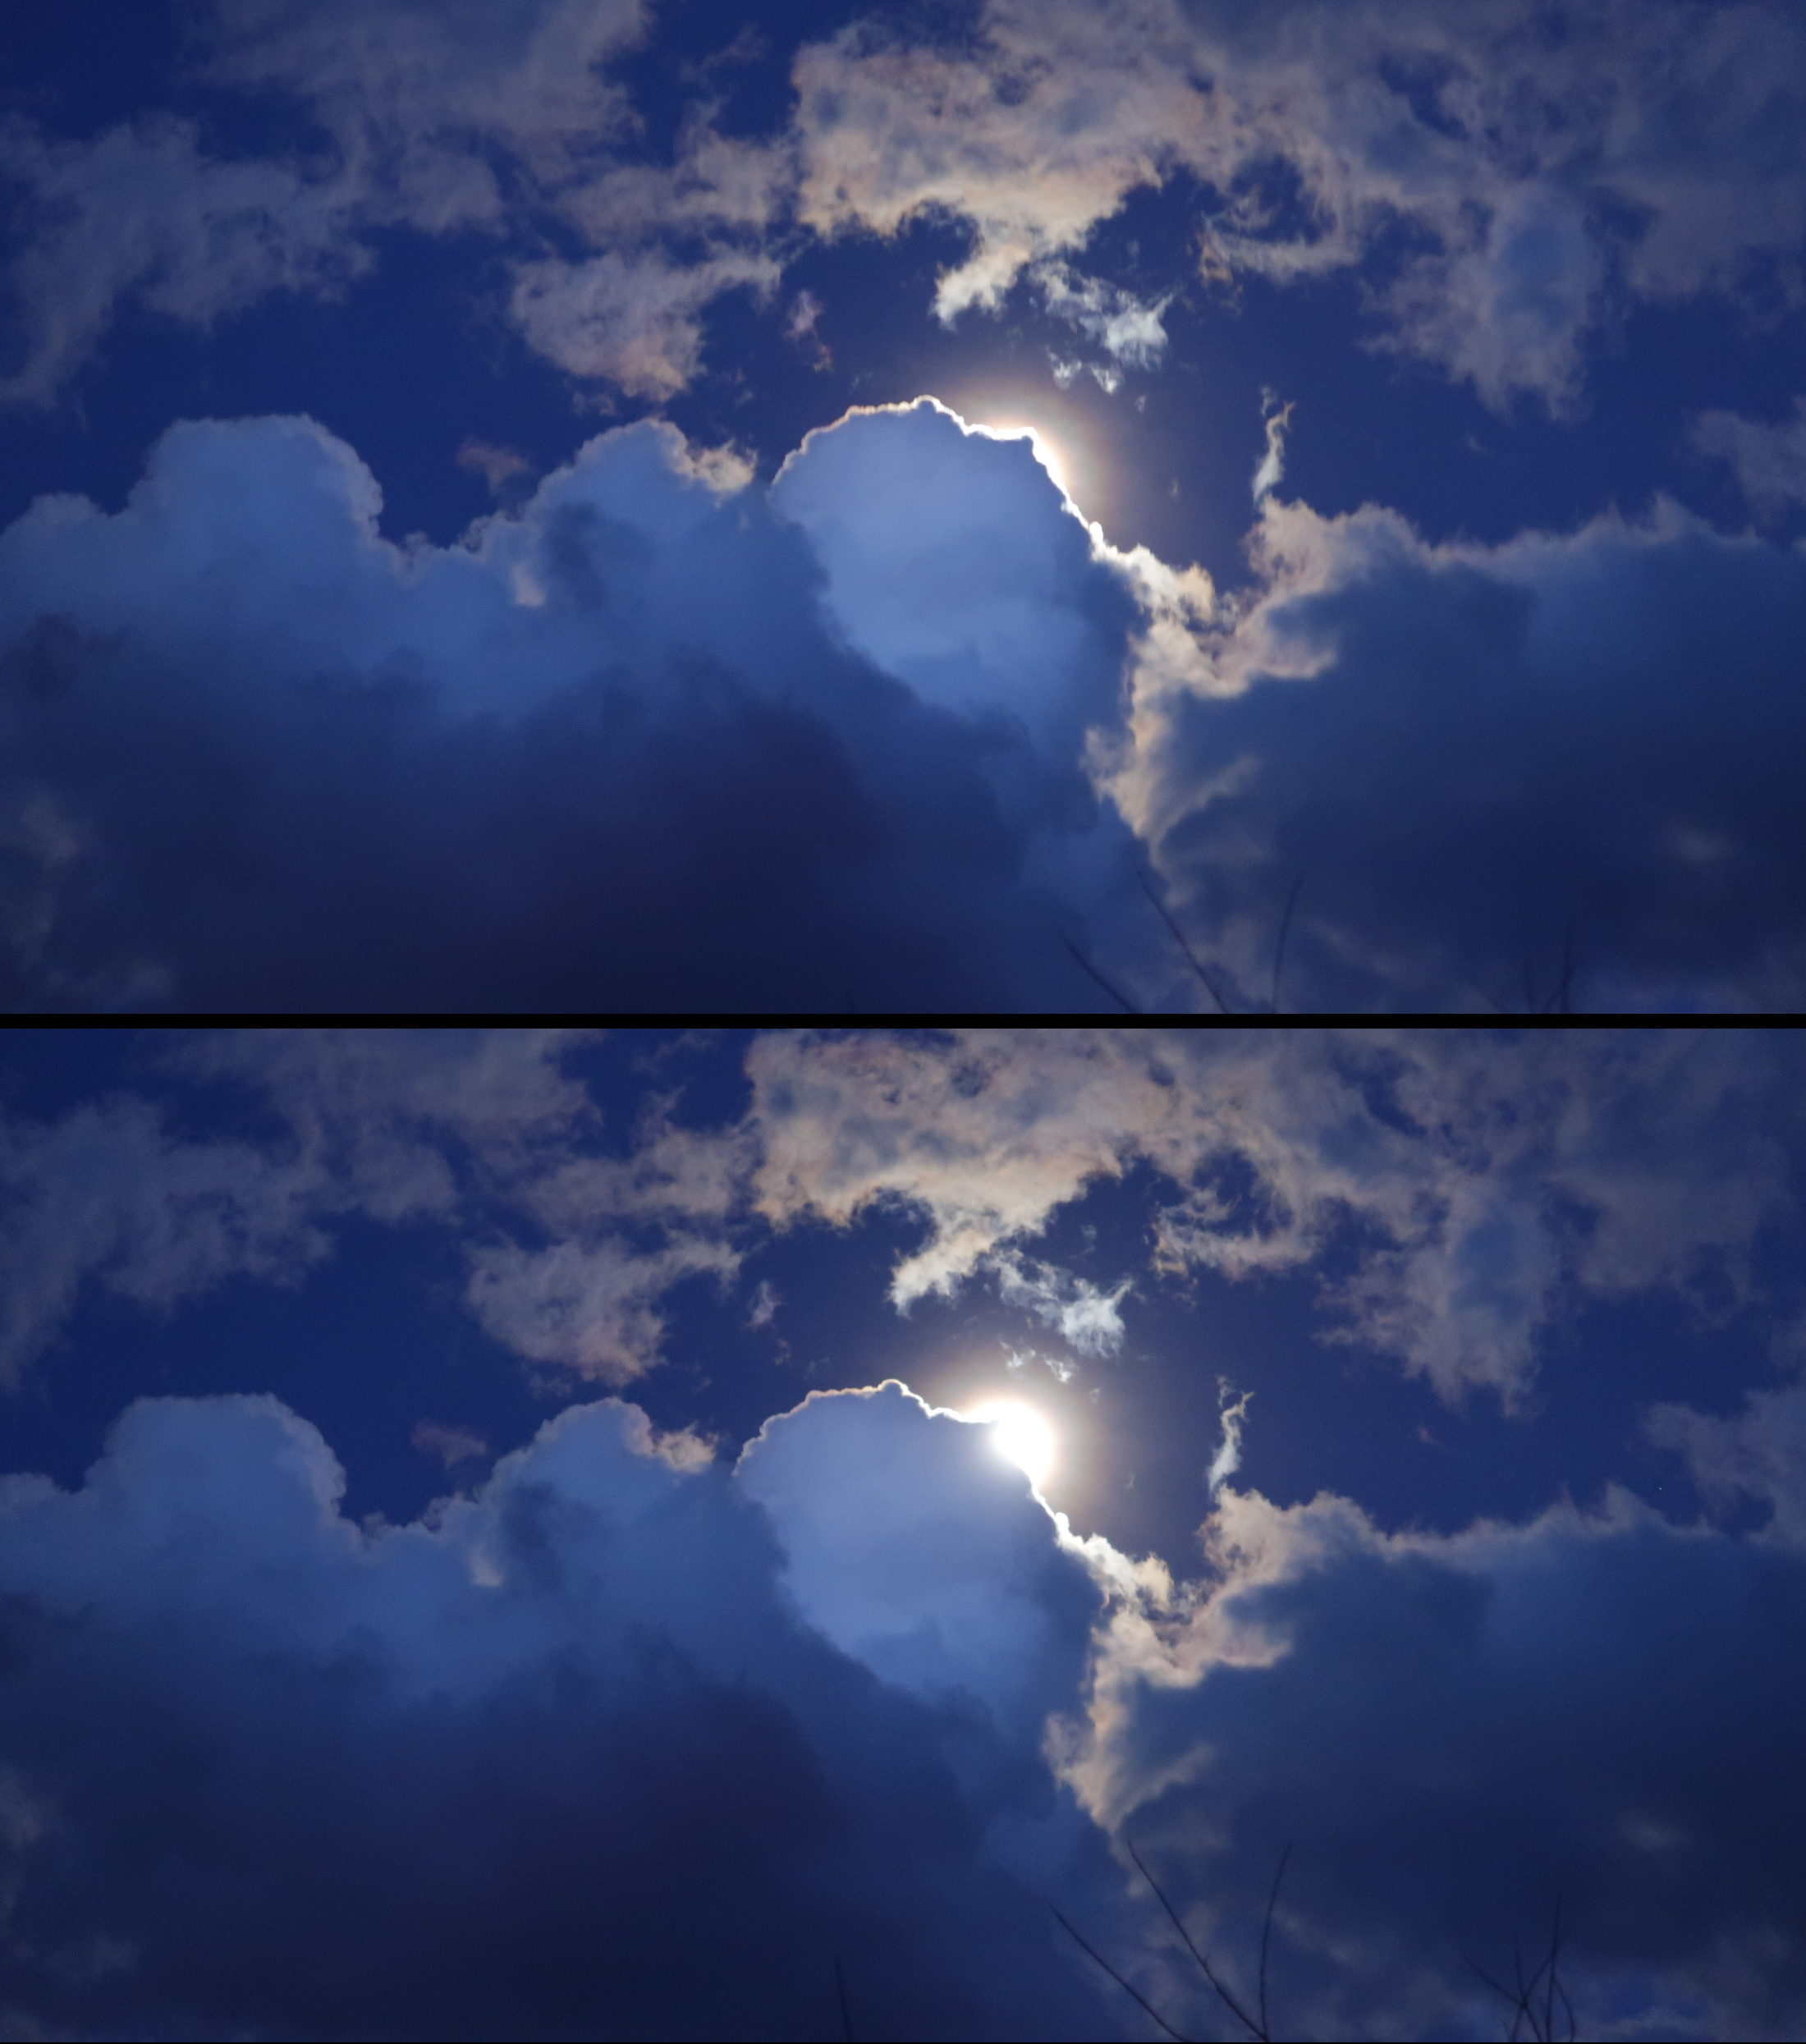 Full moon emerging from clouds in New Mexico, March 2020 (photo by the author)